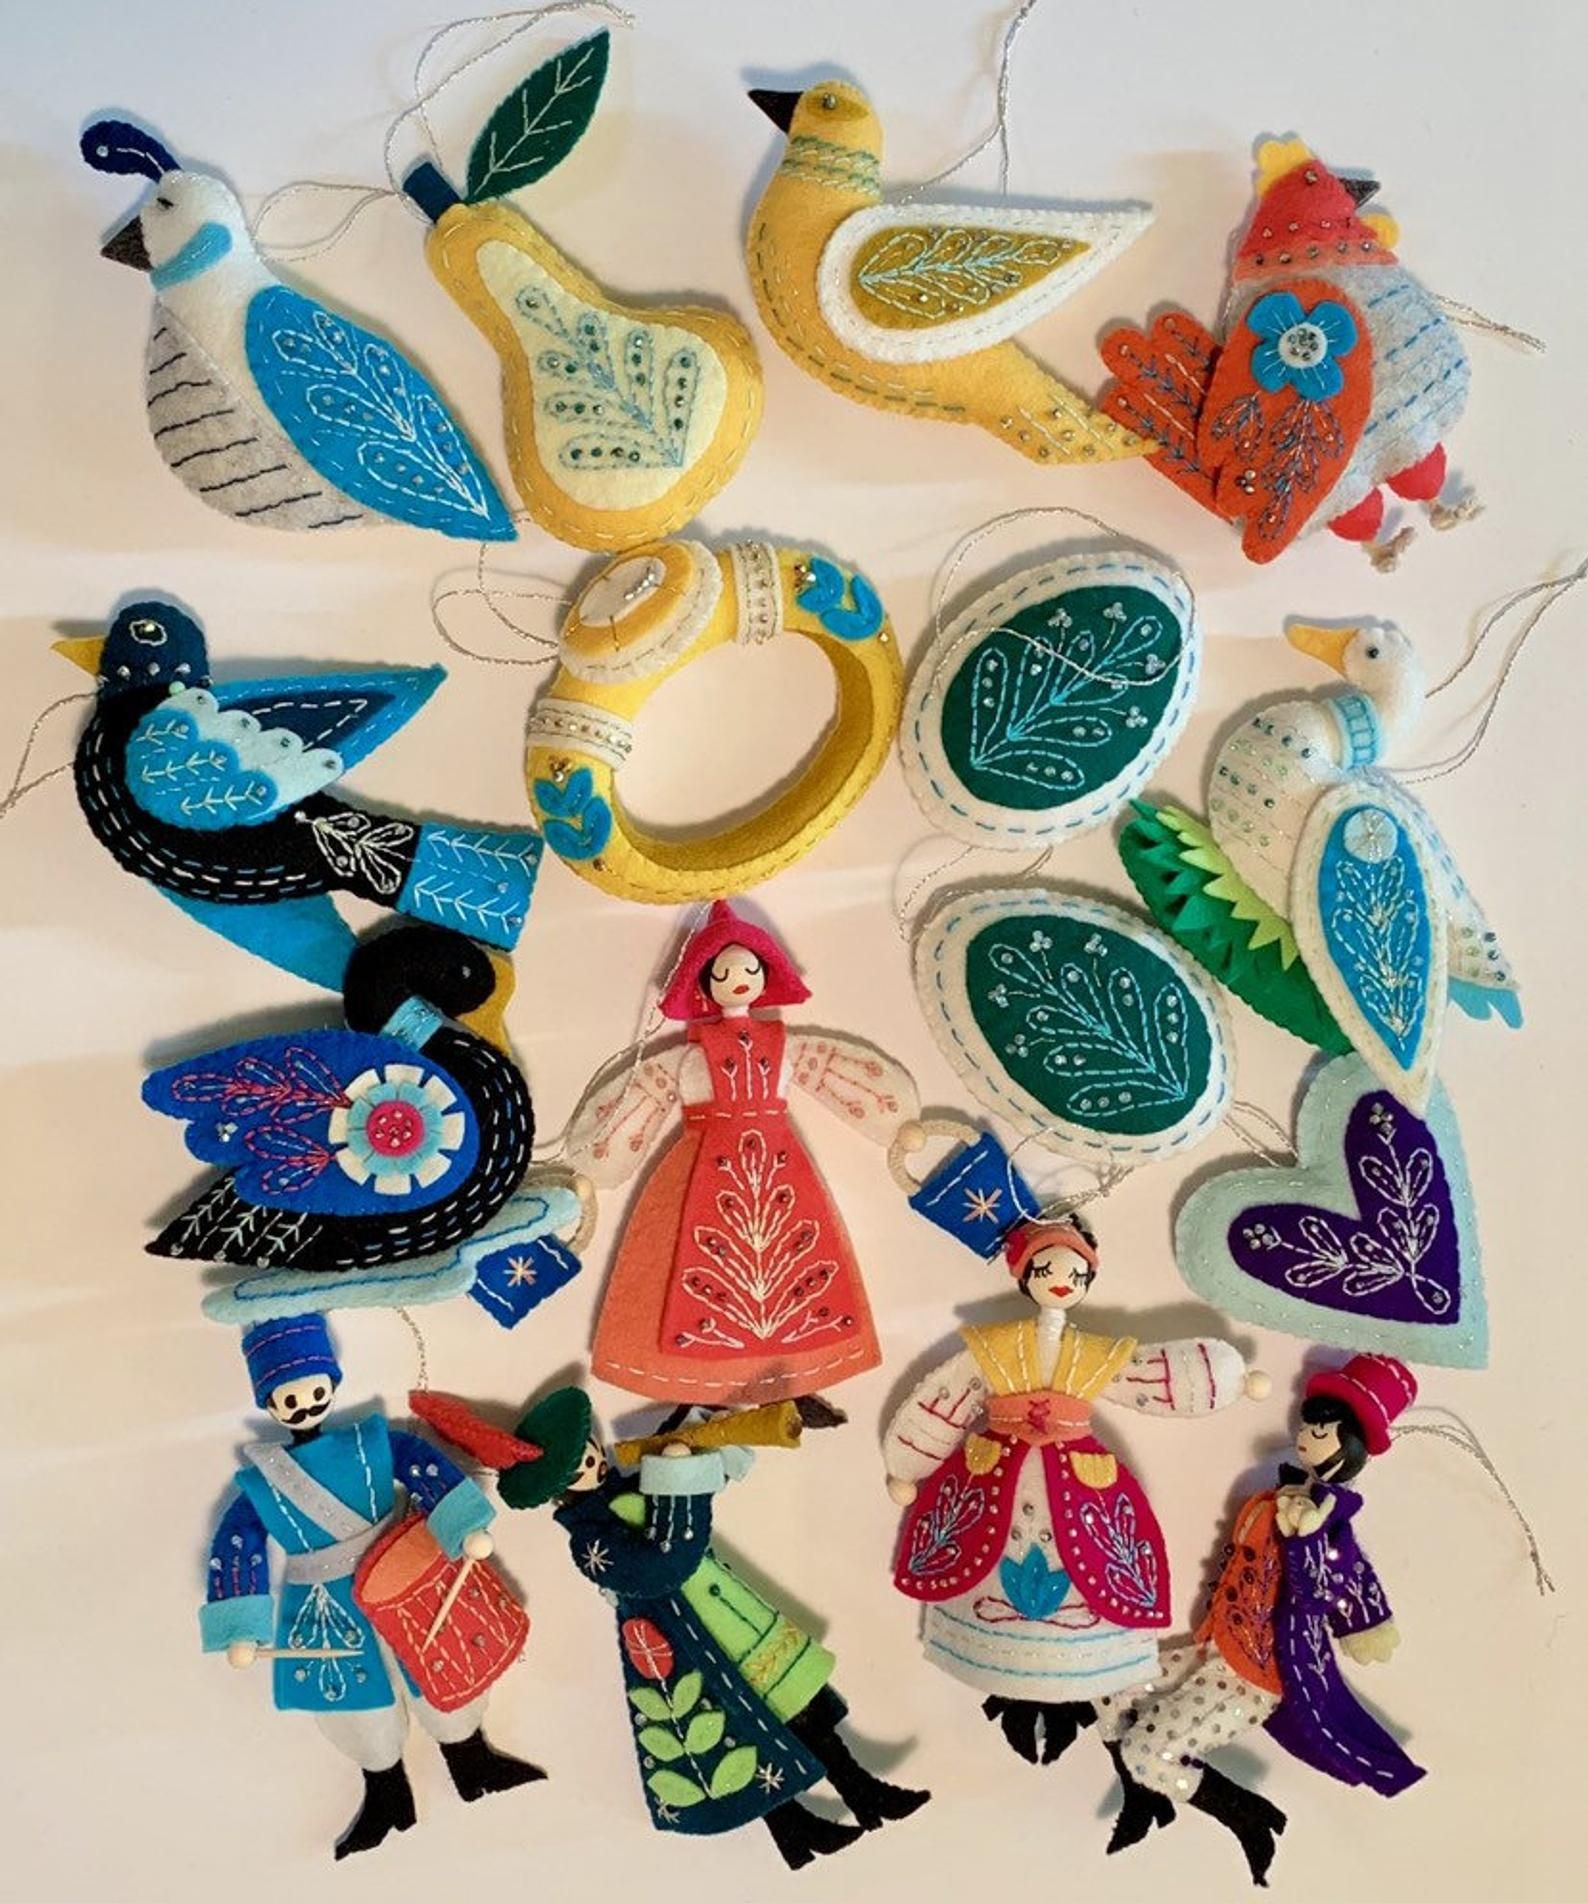 Ready To Ship 12 Days Of Christmas Ornaments Handmade Felt And Czech Beaded Holiday Brights Set Of 15 Style 006 Handmade Christmas Ornaments 12 Days Of Christmas Felt Ornaments